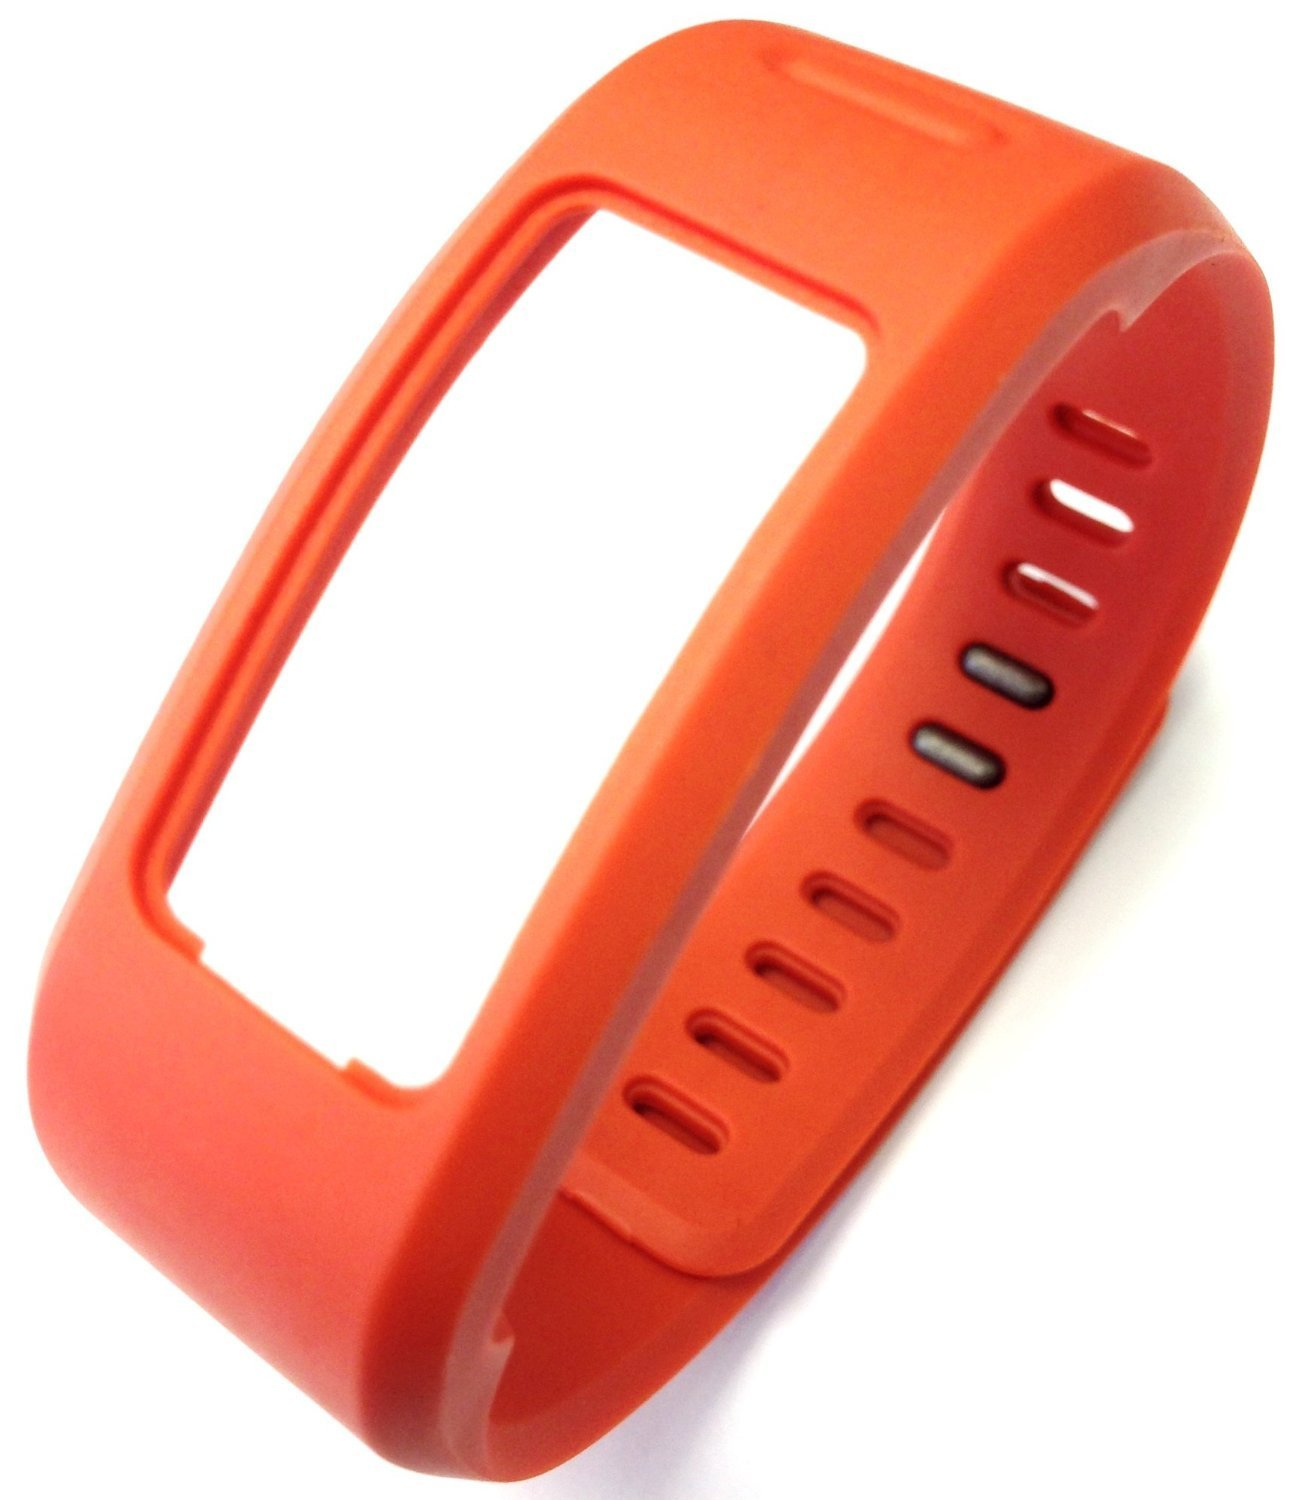 I-SMILE® 1PC Replacement Bands with Metal Clasps for Garmin Vivofit(No tracker, Replacement Bands Only) (Tangerine, Large)